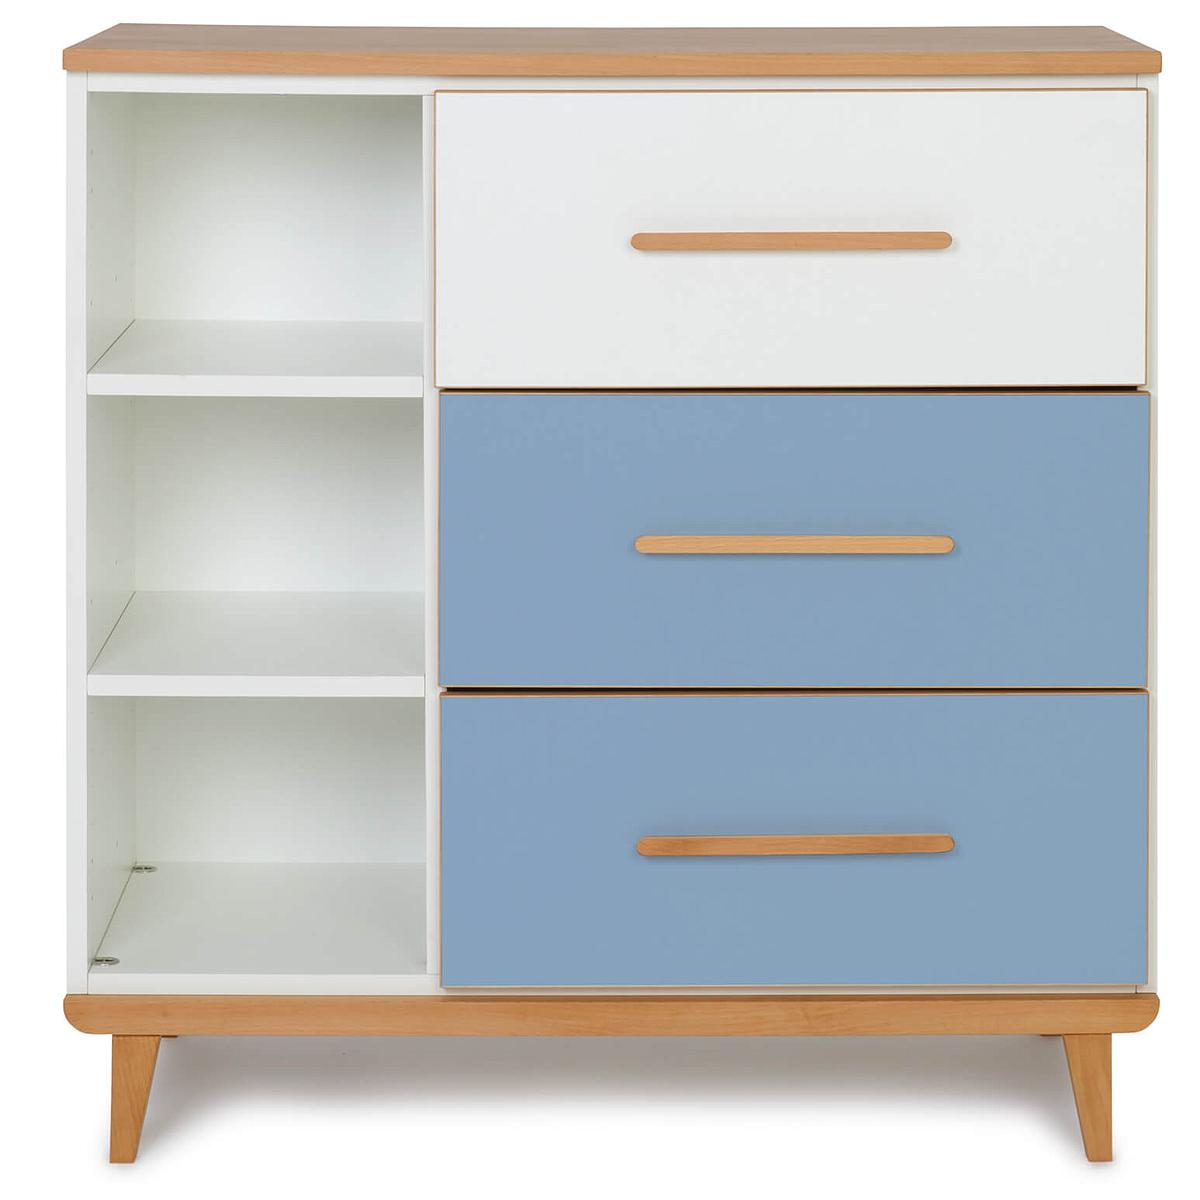 Commode 3 tiroirs NADO By A.K. white-capri blue